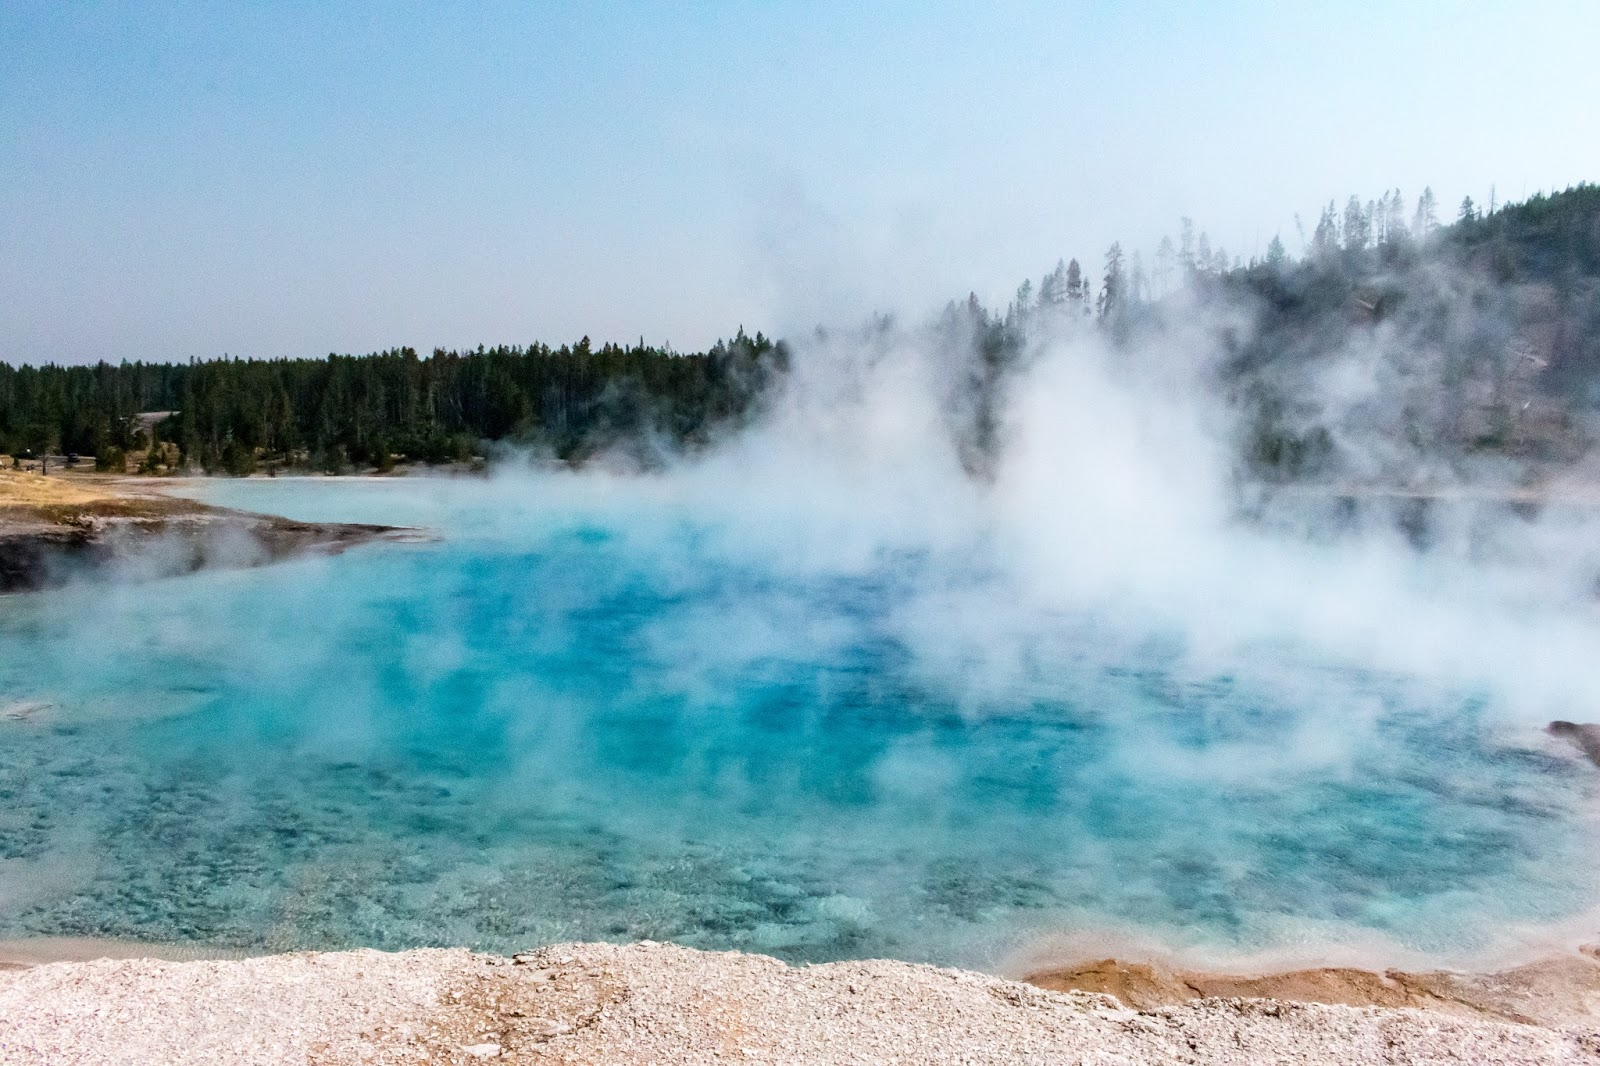 this geyser was once the largest geyser in the world it s last major eruption was in the 1800 s and today is just a very large thermal spring